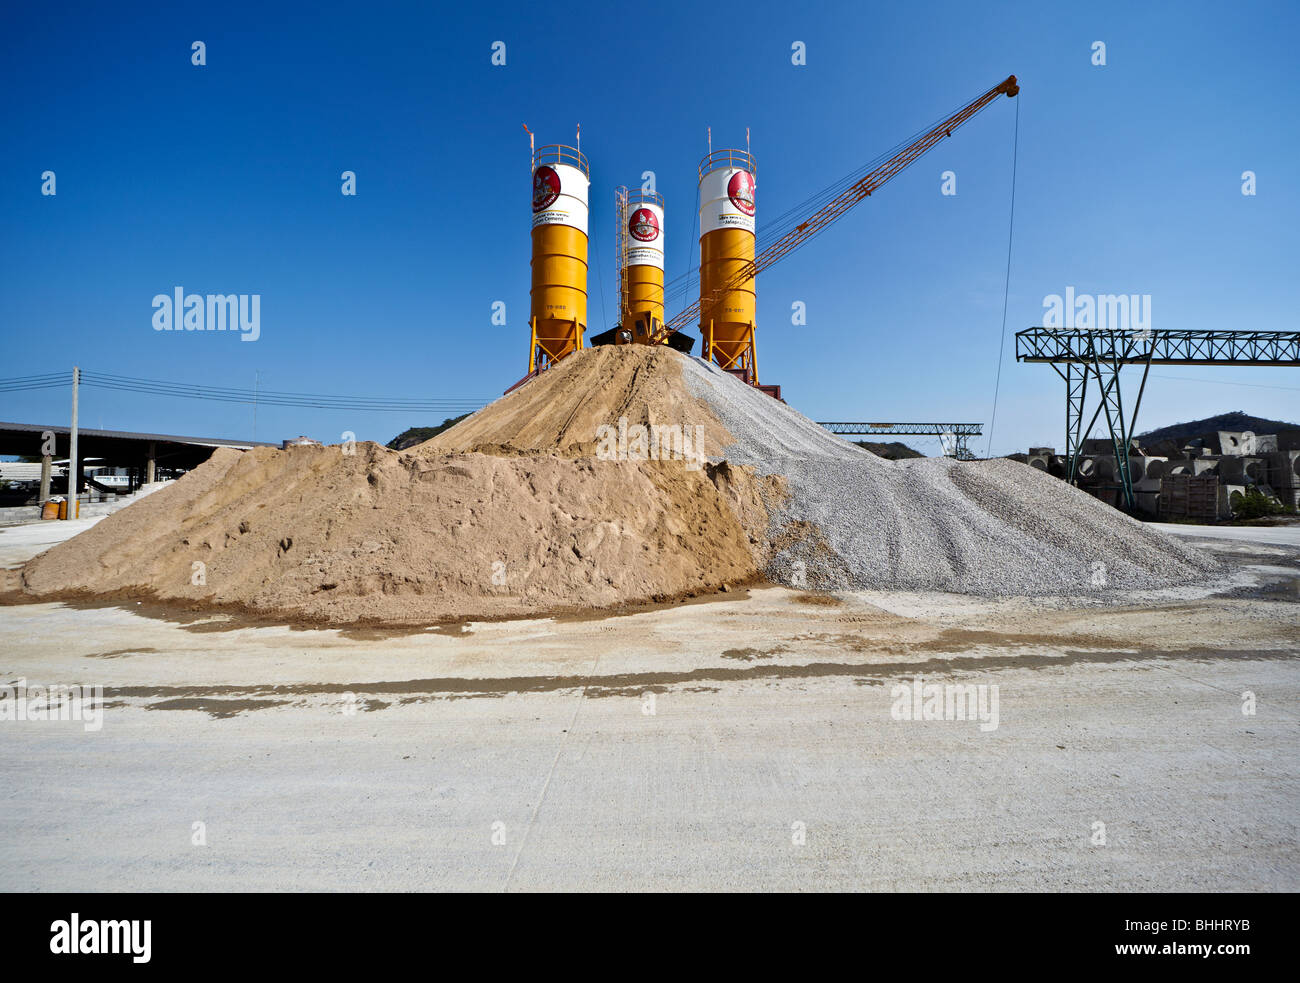 cement-production-plant-and-silos-in-tha